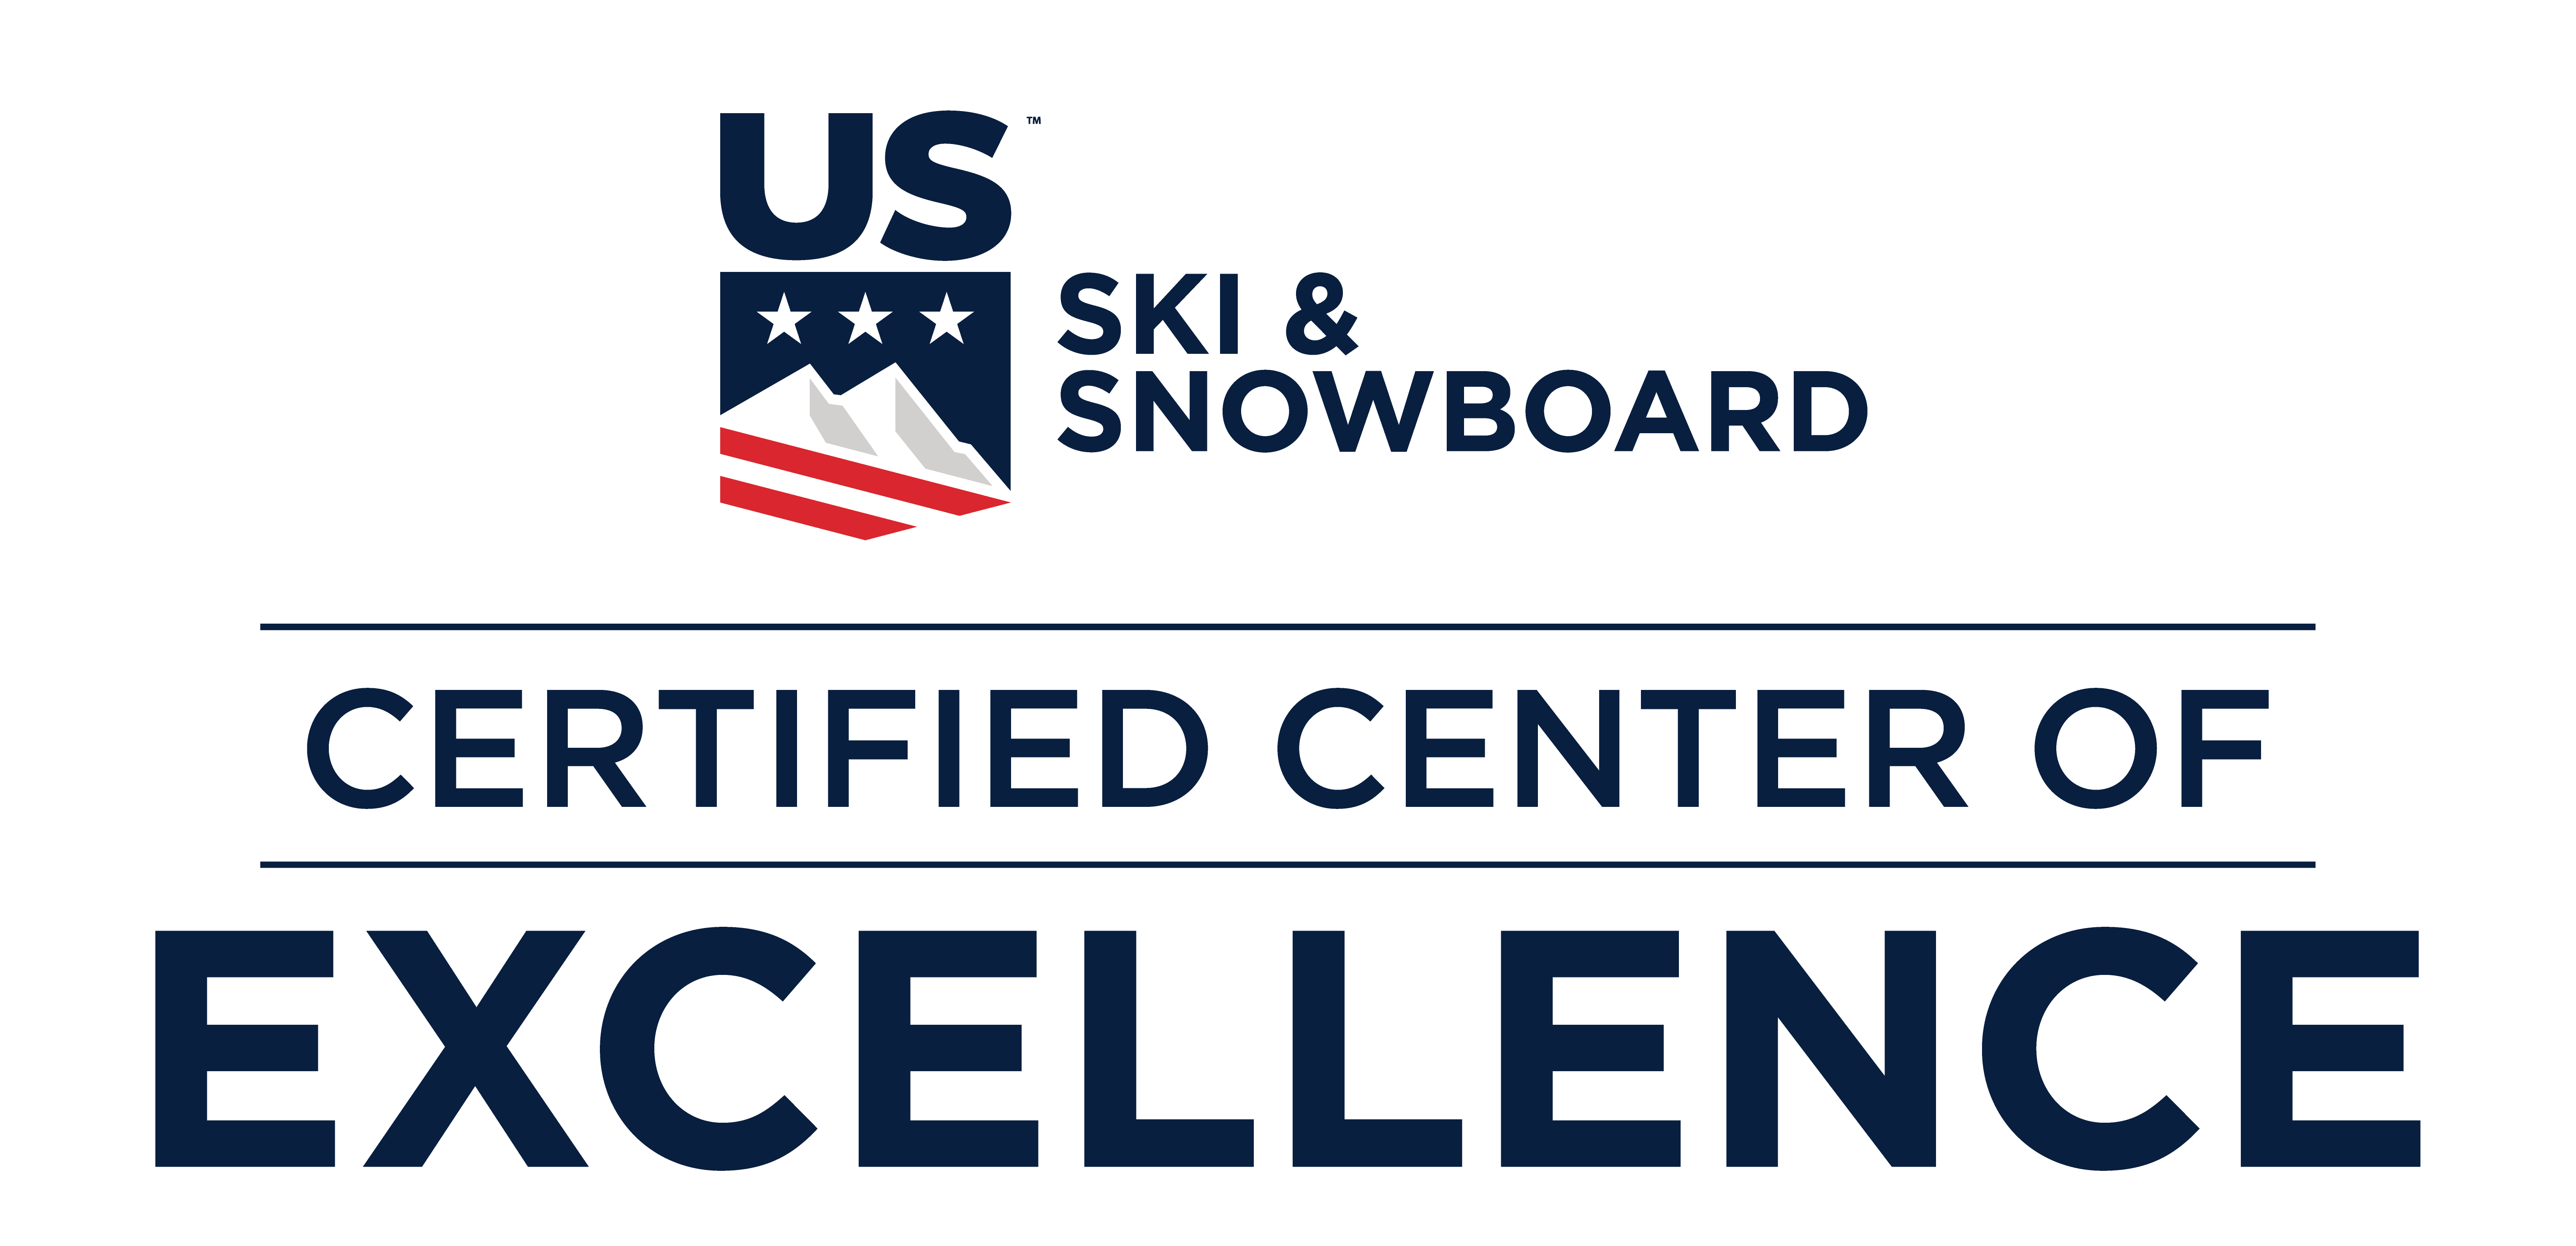 US Ski and Snowboard Certified Center of Excellence